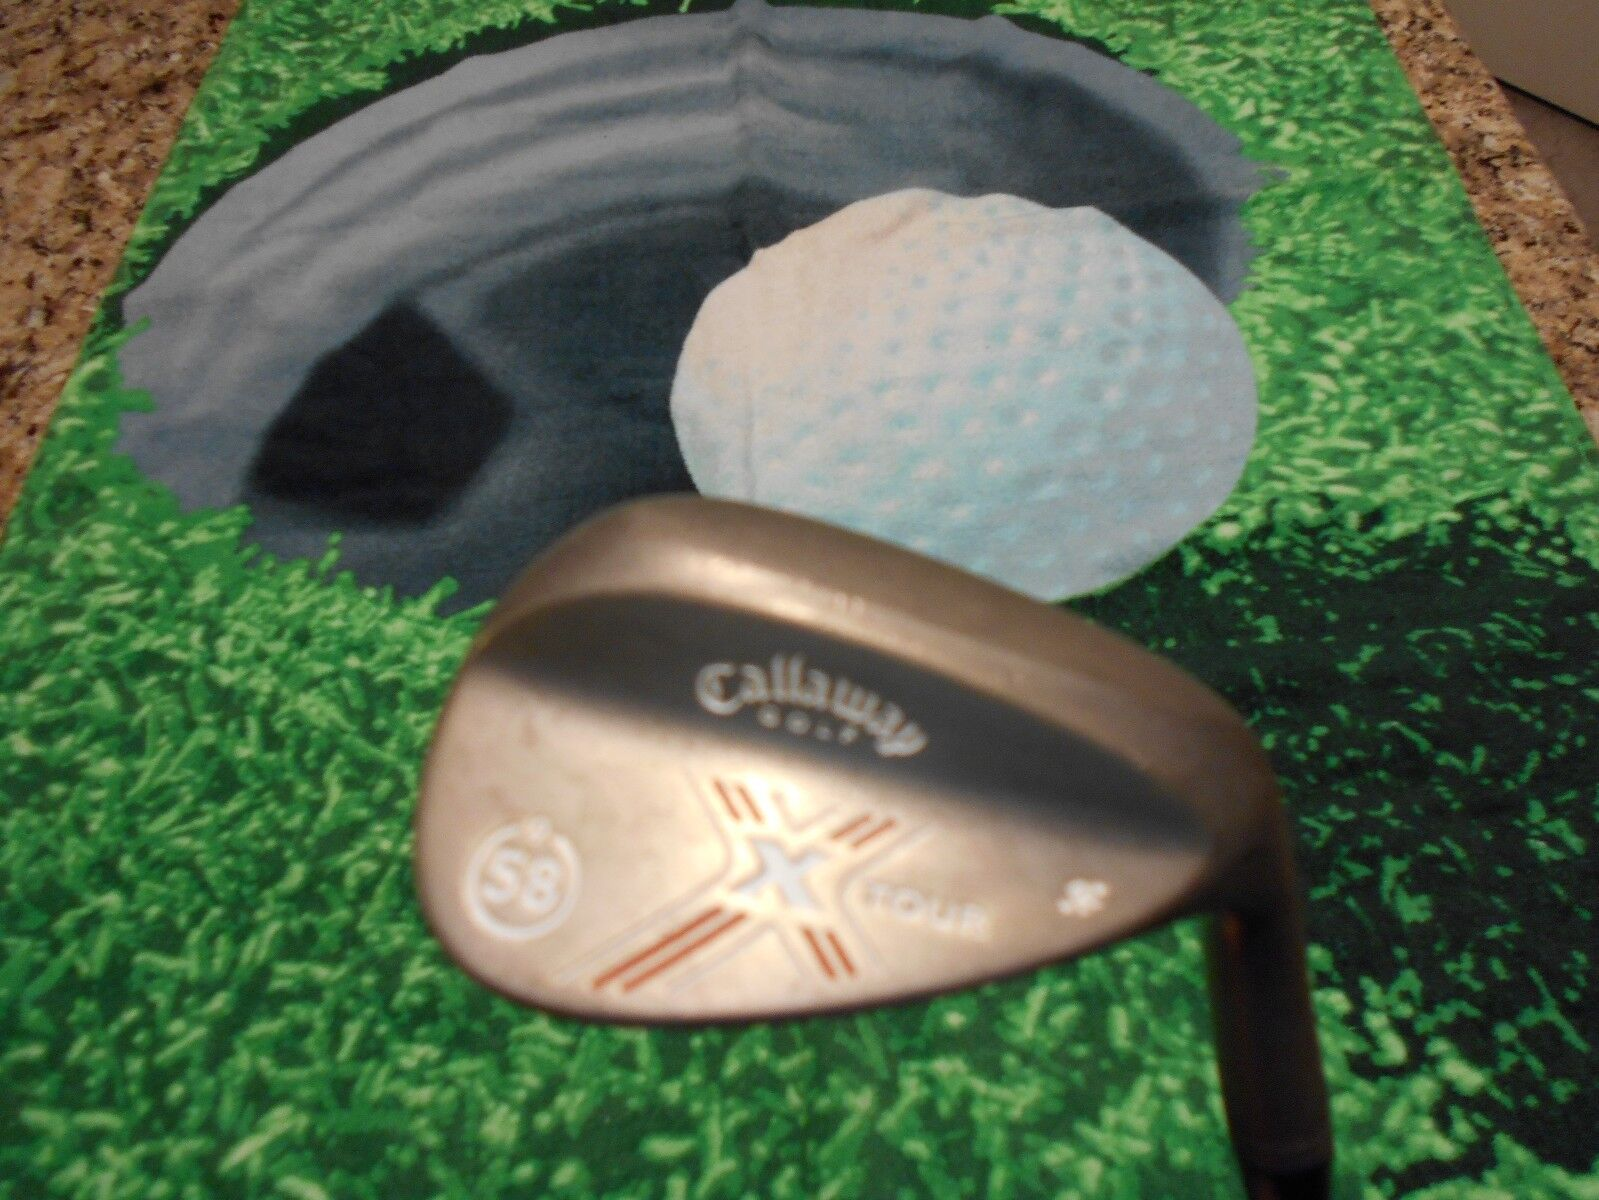 Callaway X Tour Forged  58 9 Bounce Pro Wedge CALLAWAY X TOUR Wedge Flex Steel